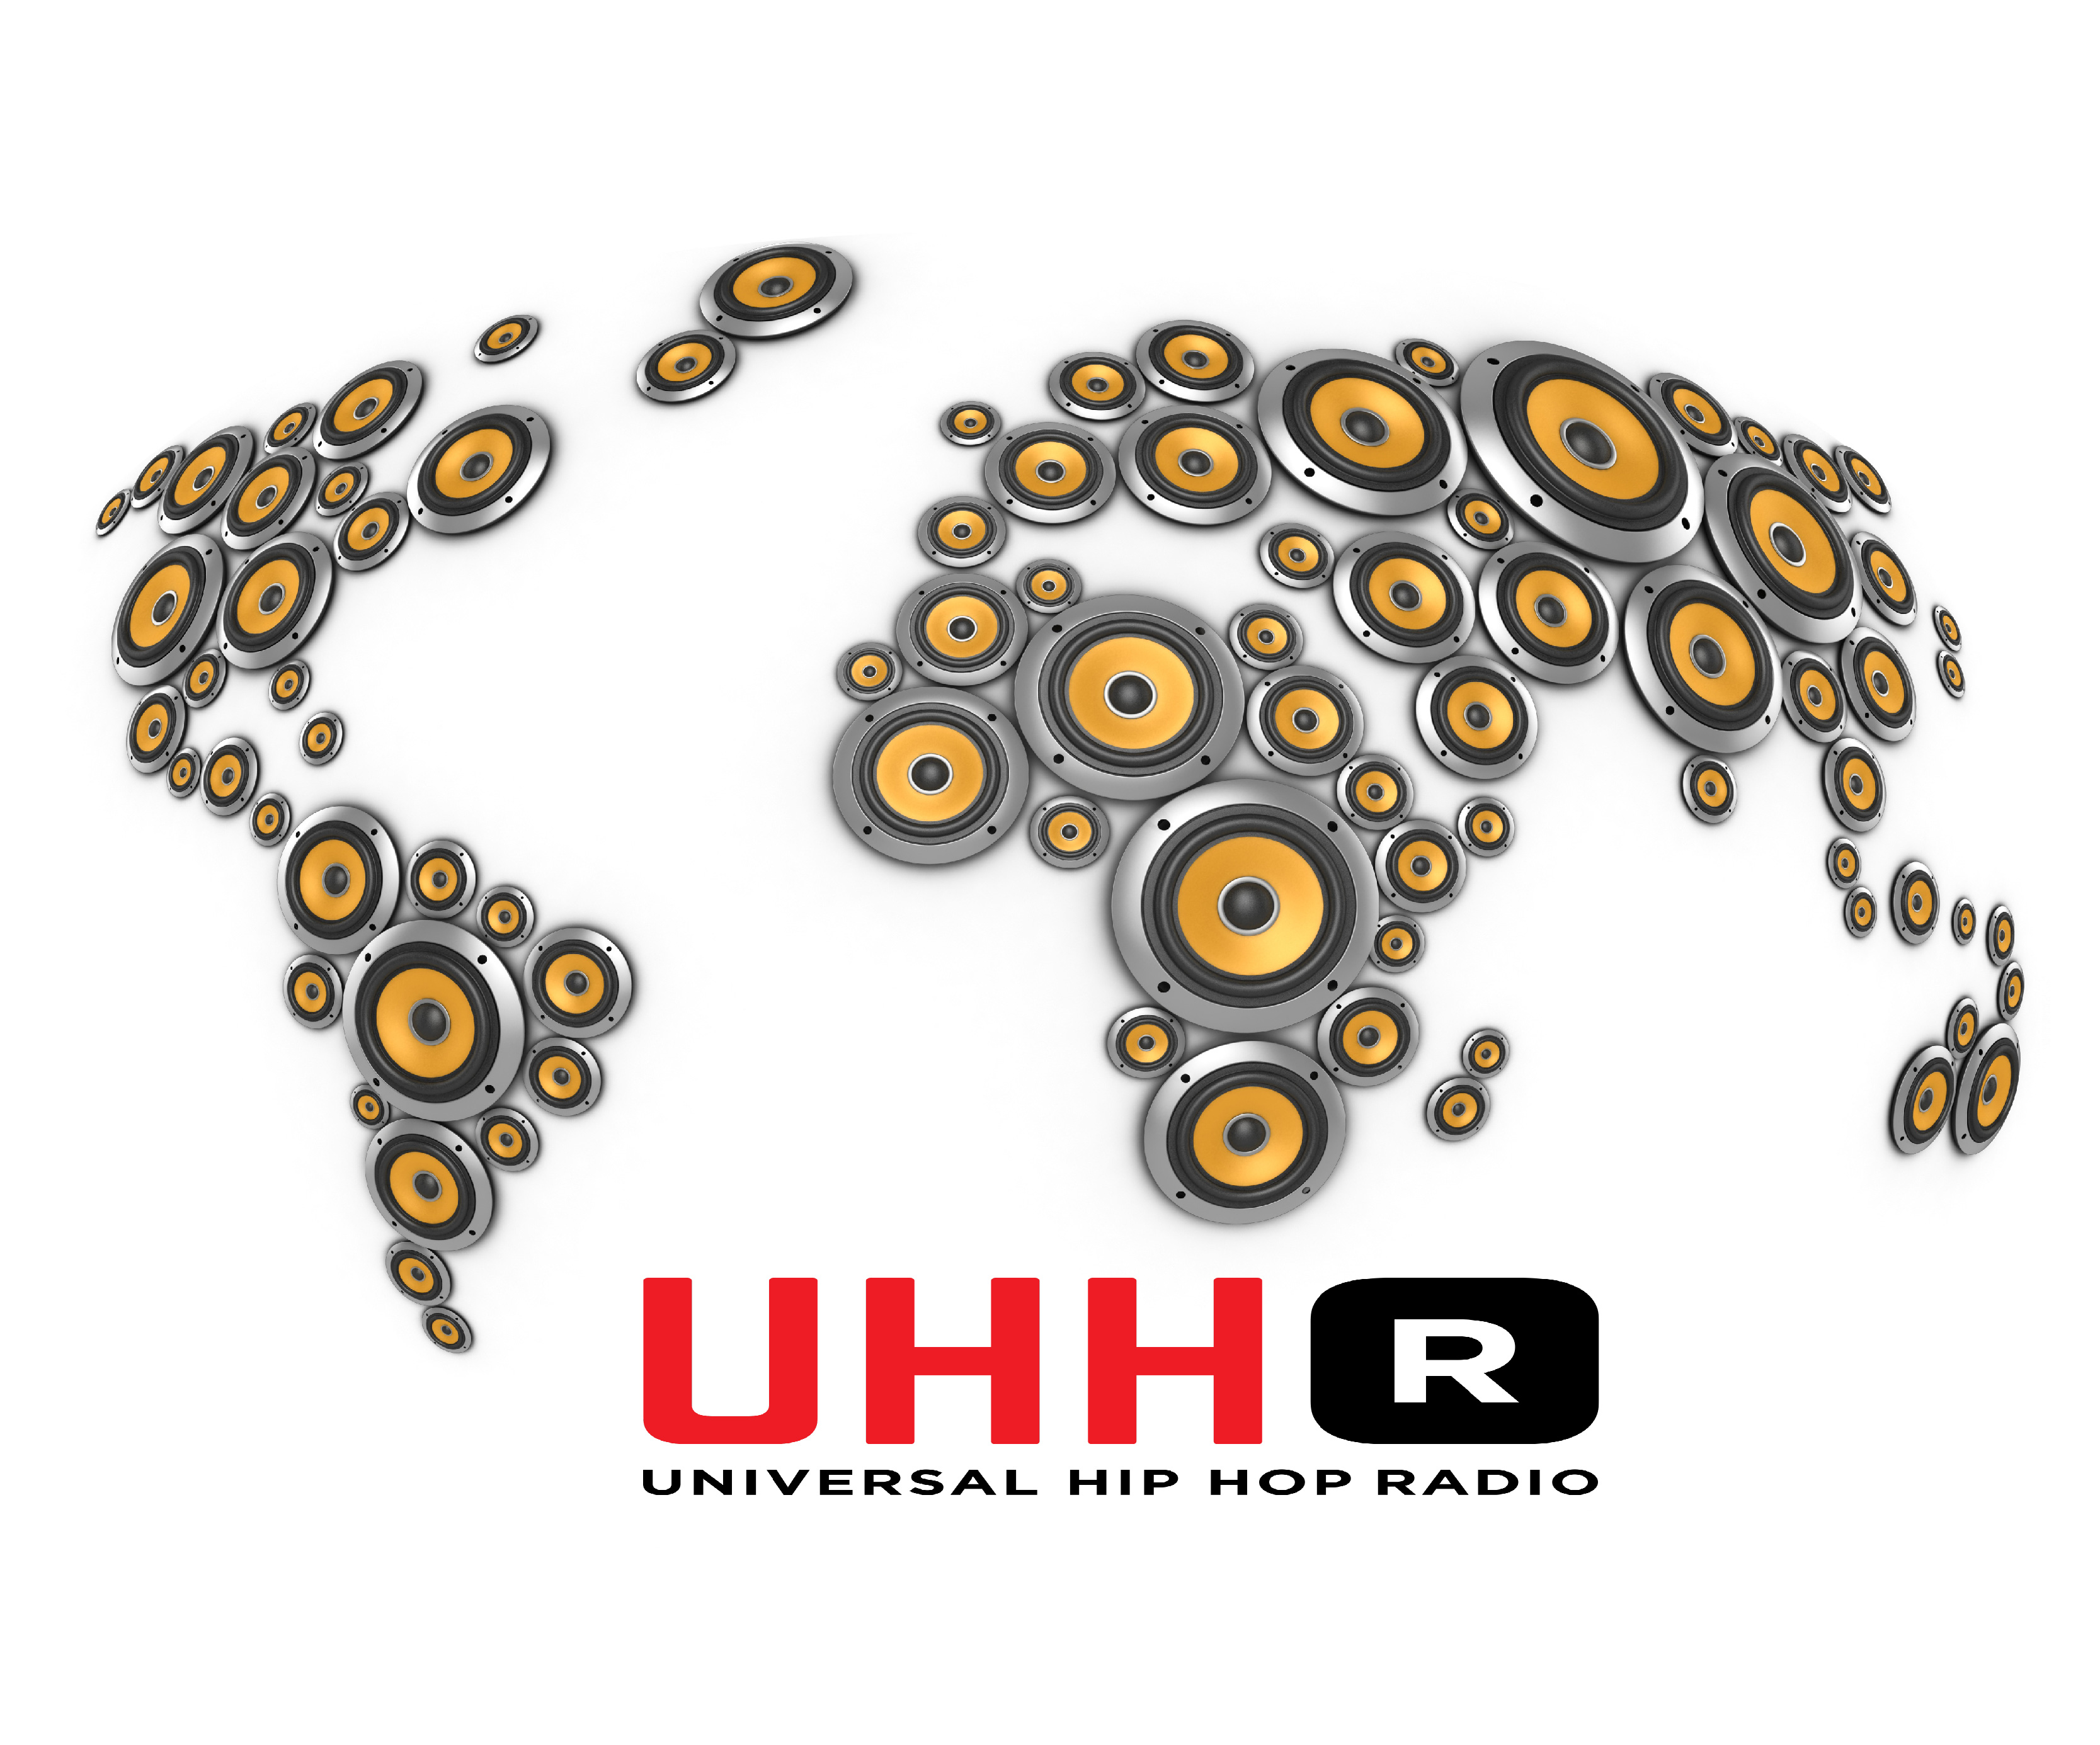 The Official Record of Hip Hop  UHHRadio logo